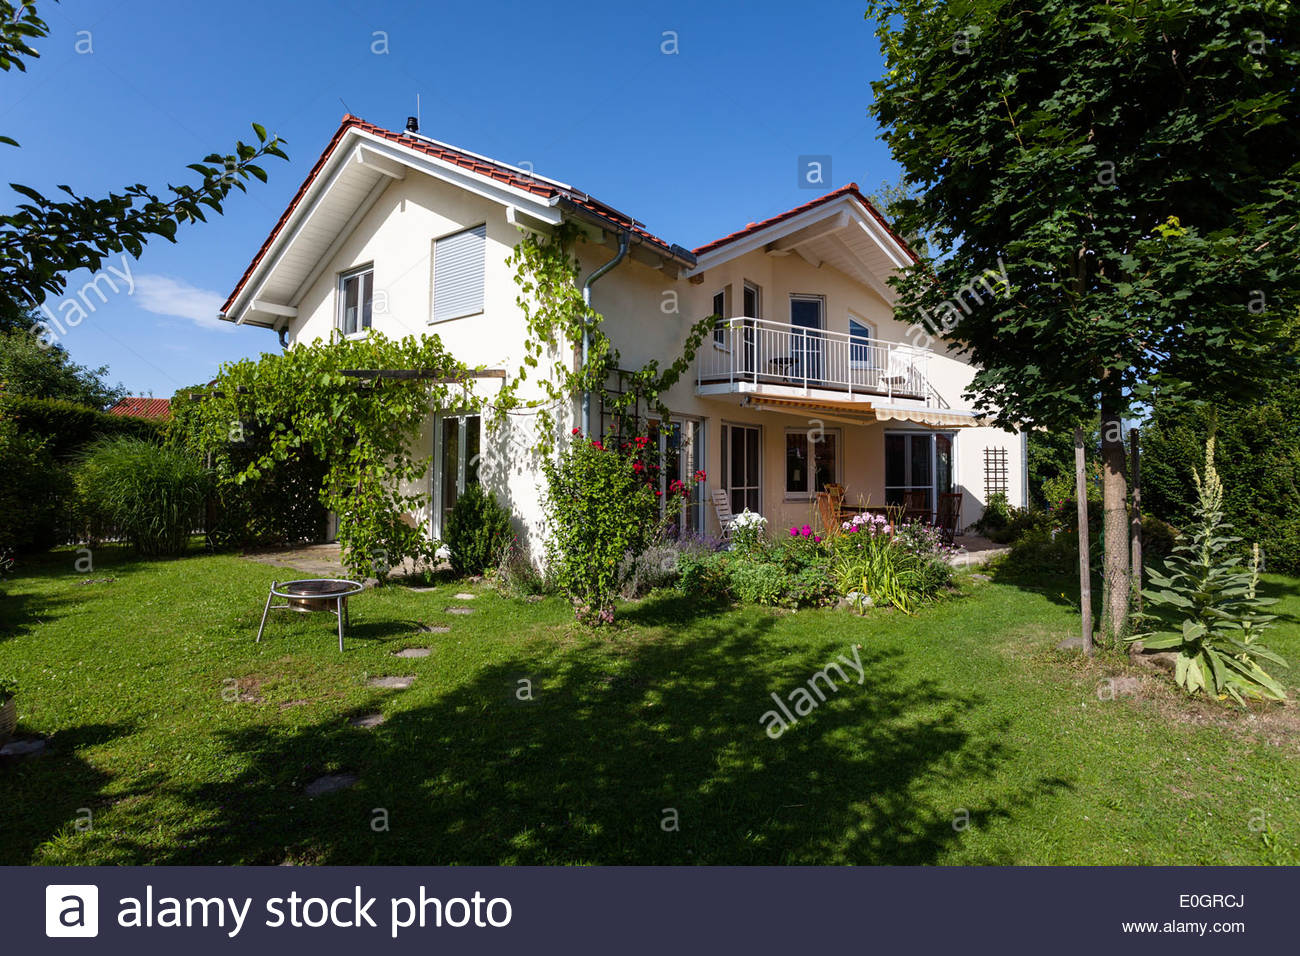 detached family house with garden in summer, Upper Bavaria, Germany - Stock Image